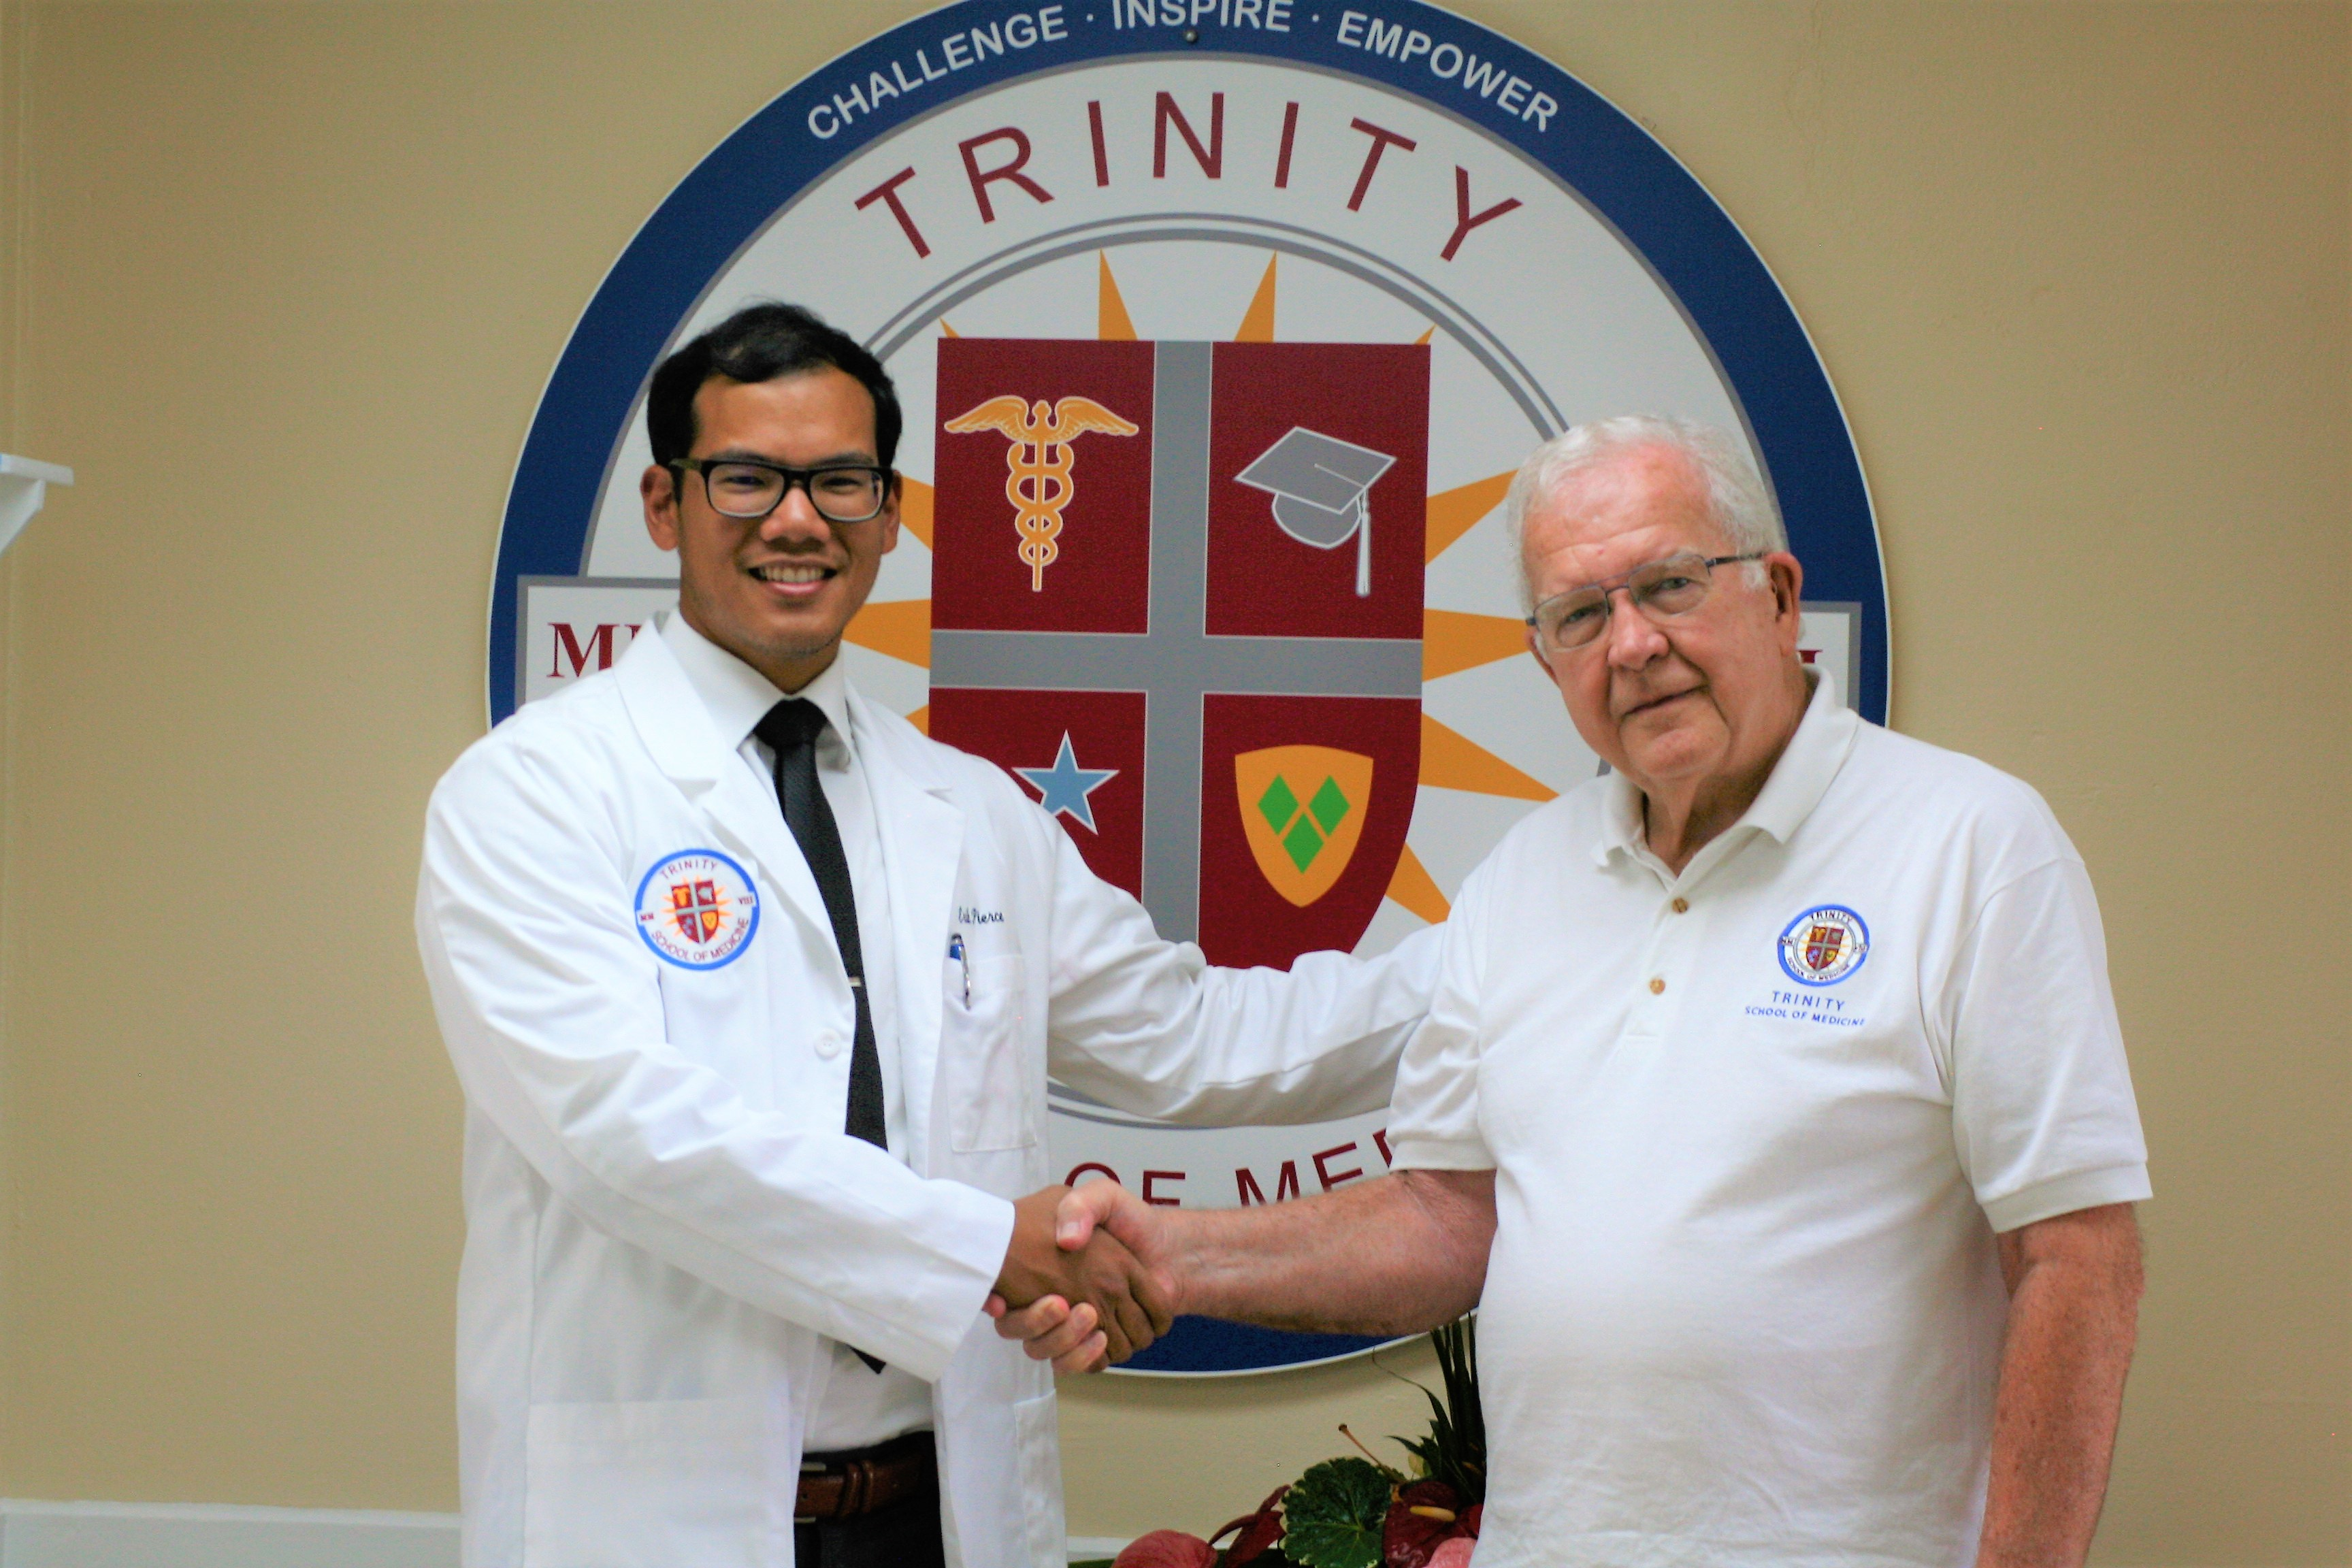 Trinity School of Medicine Announces September 2017 Chancellor's Scholarship Recipient